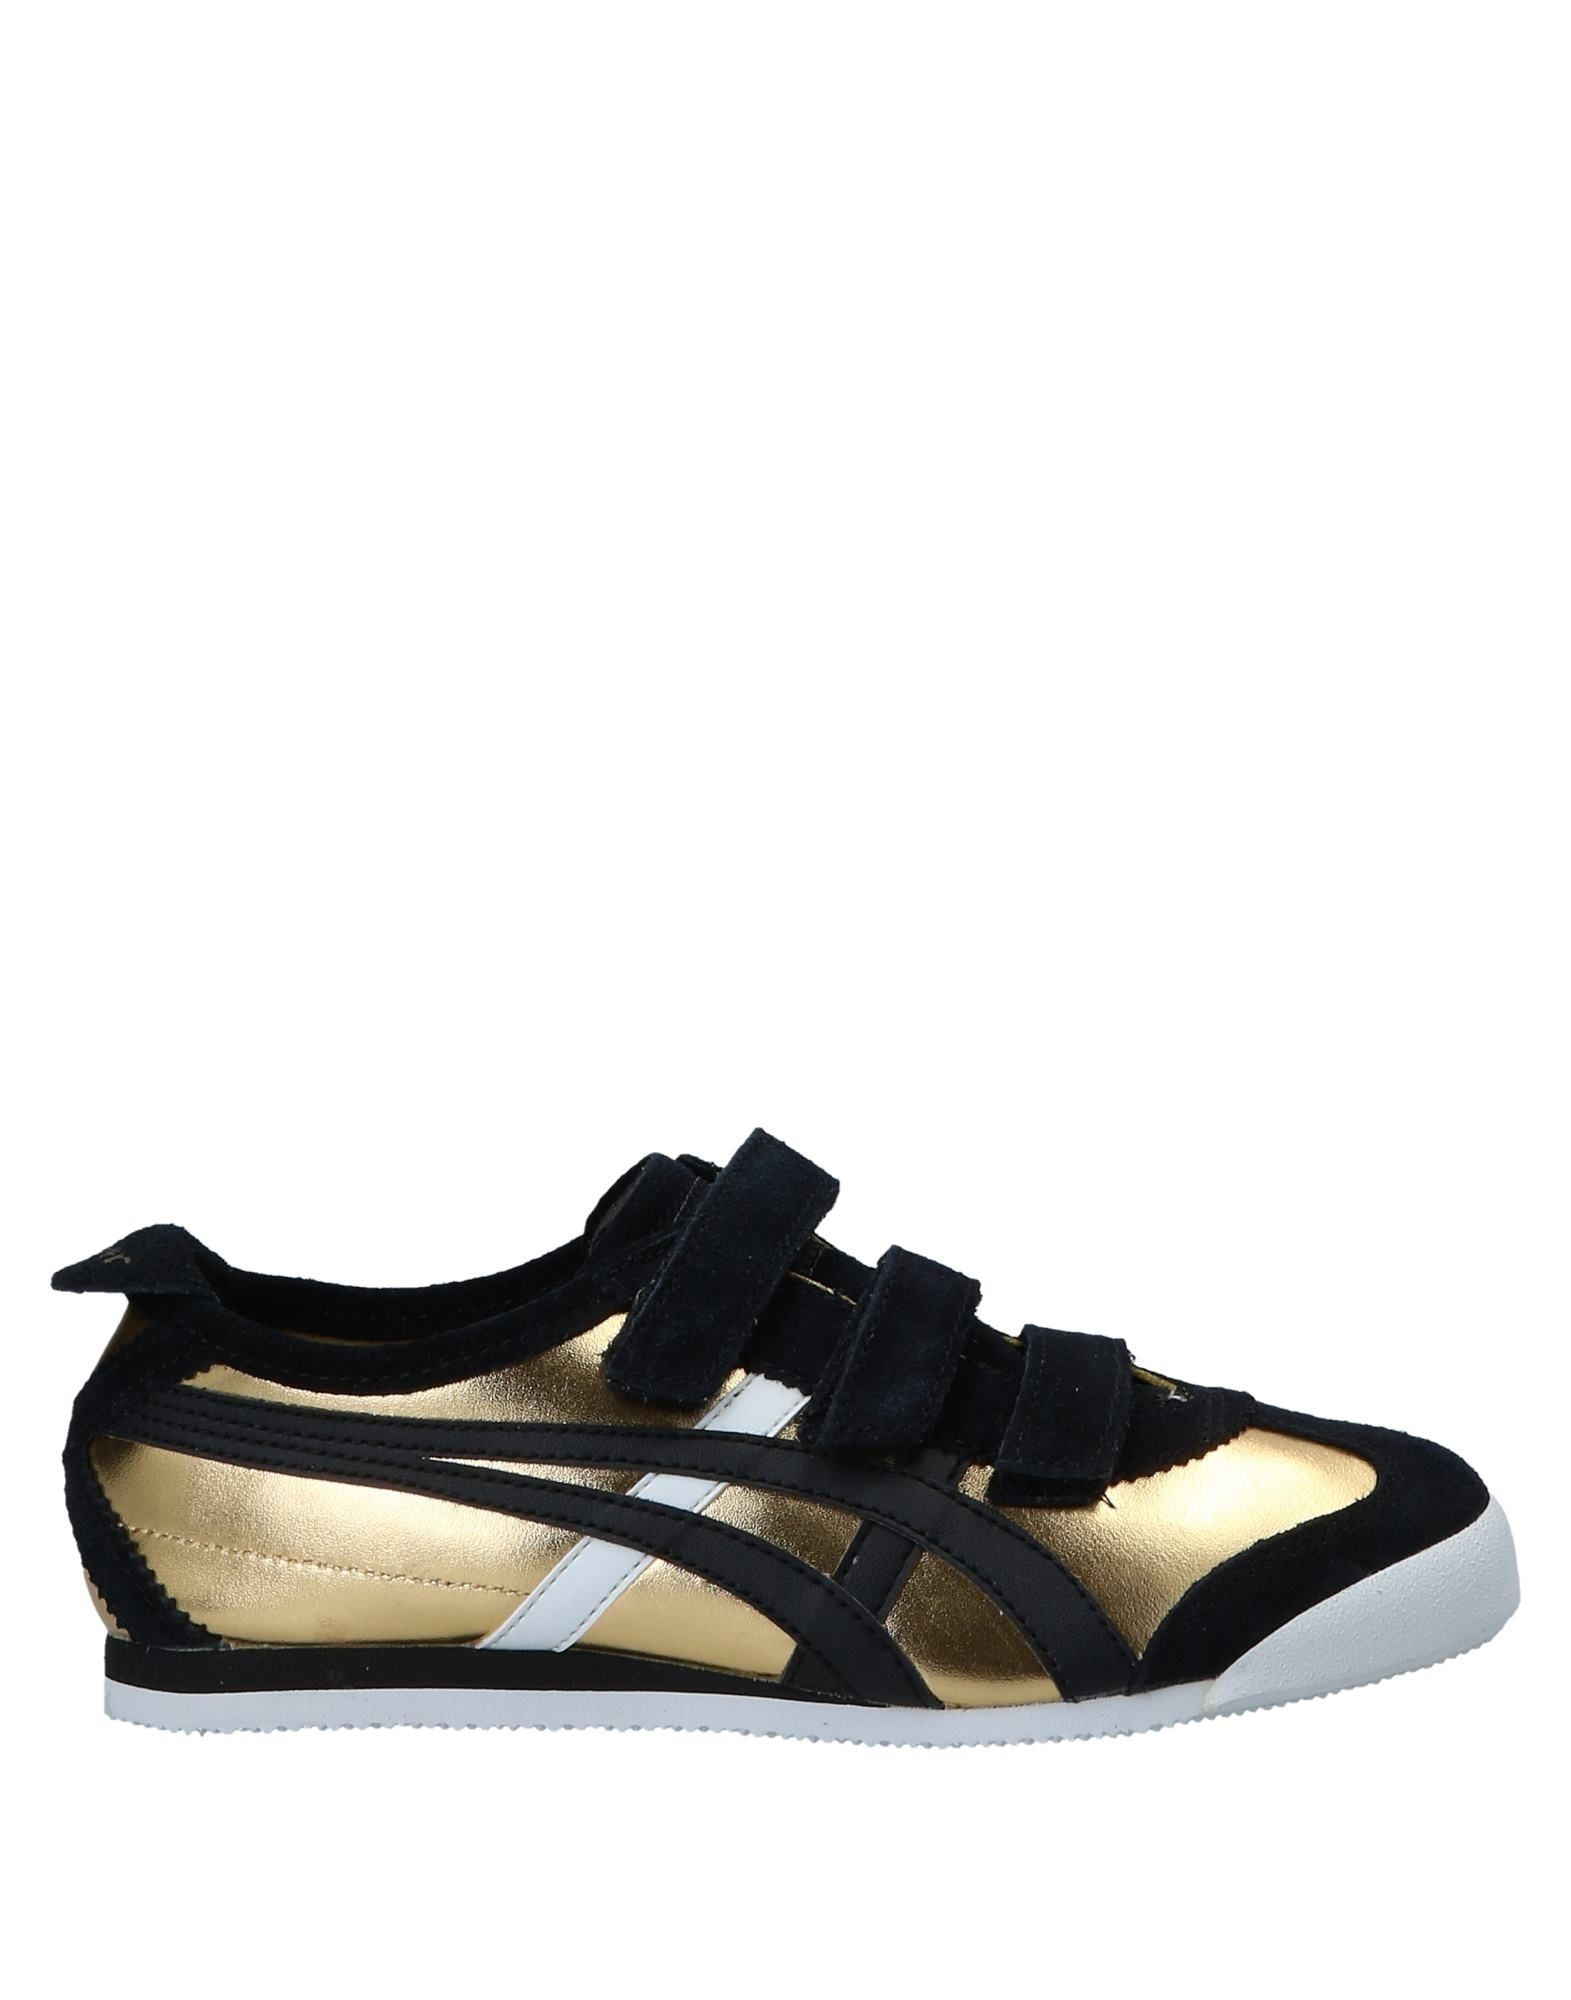 Onitsuka on Tiger Sneakers - Women Onitsuka Tiger Sneakers online on Onitsuka  Australia - 11558425XM 3523fe